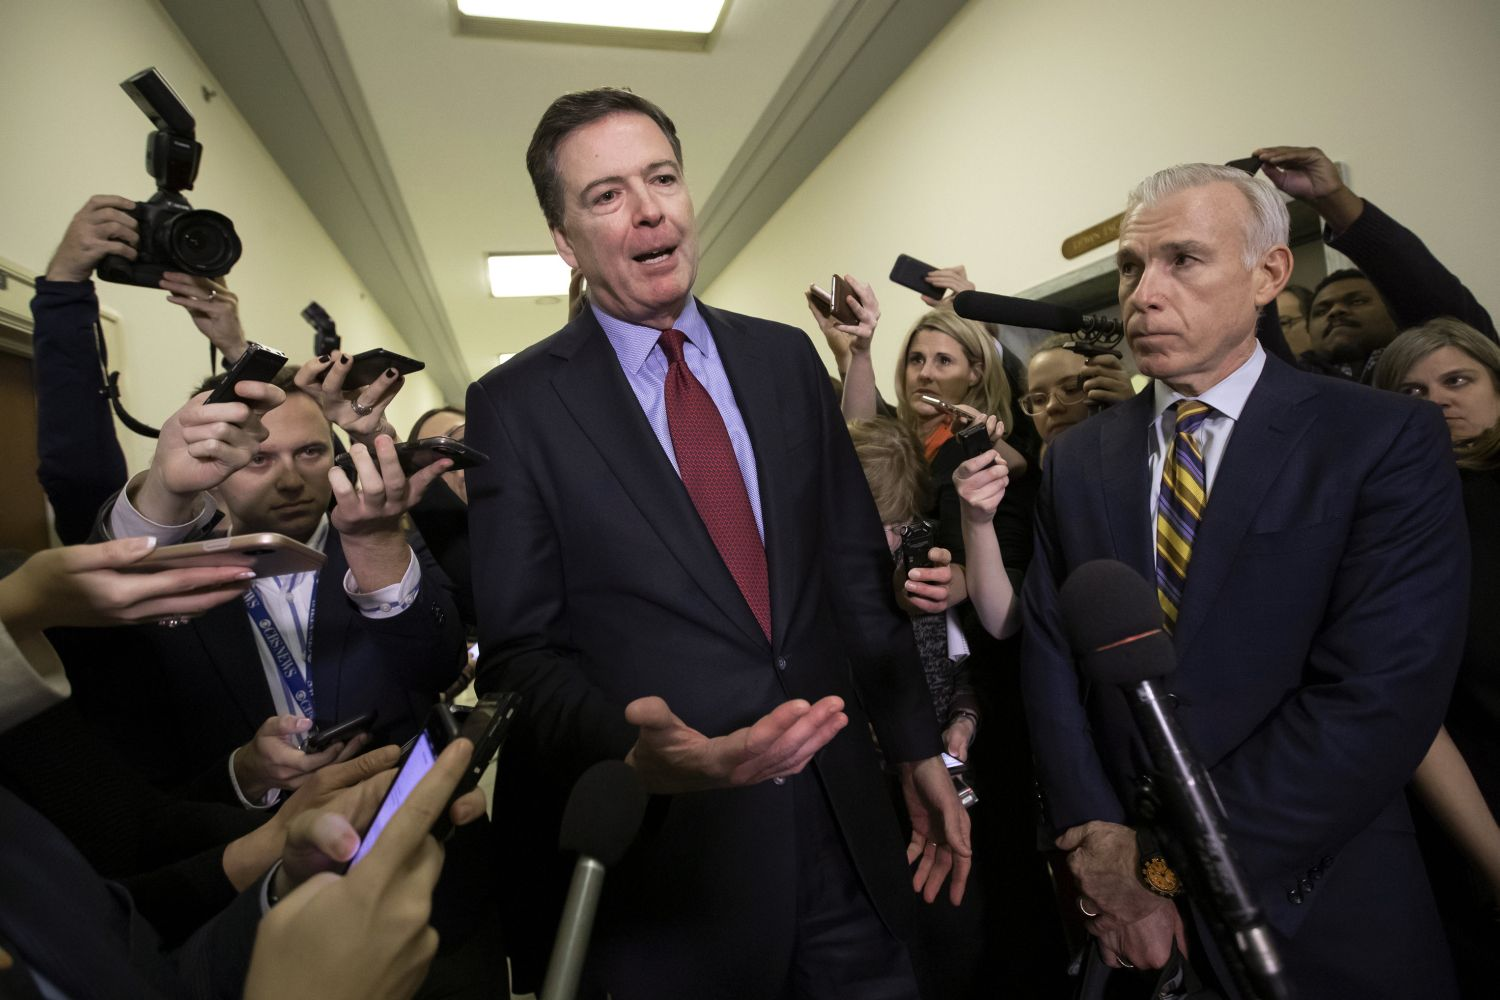 FILE - In this Dec. 7, 2018, file photo, former FBI Director James Comey, with his attorney, David Kelley, right, speaks to reporters after a day of testimony before the House Judiciary and Oversight committees, on Capitol Hill in Washington. (AP Photo/J. Scott Applewhite, File)